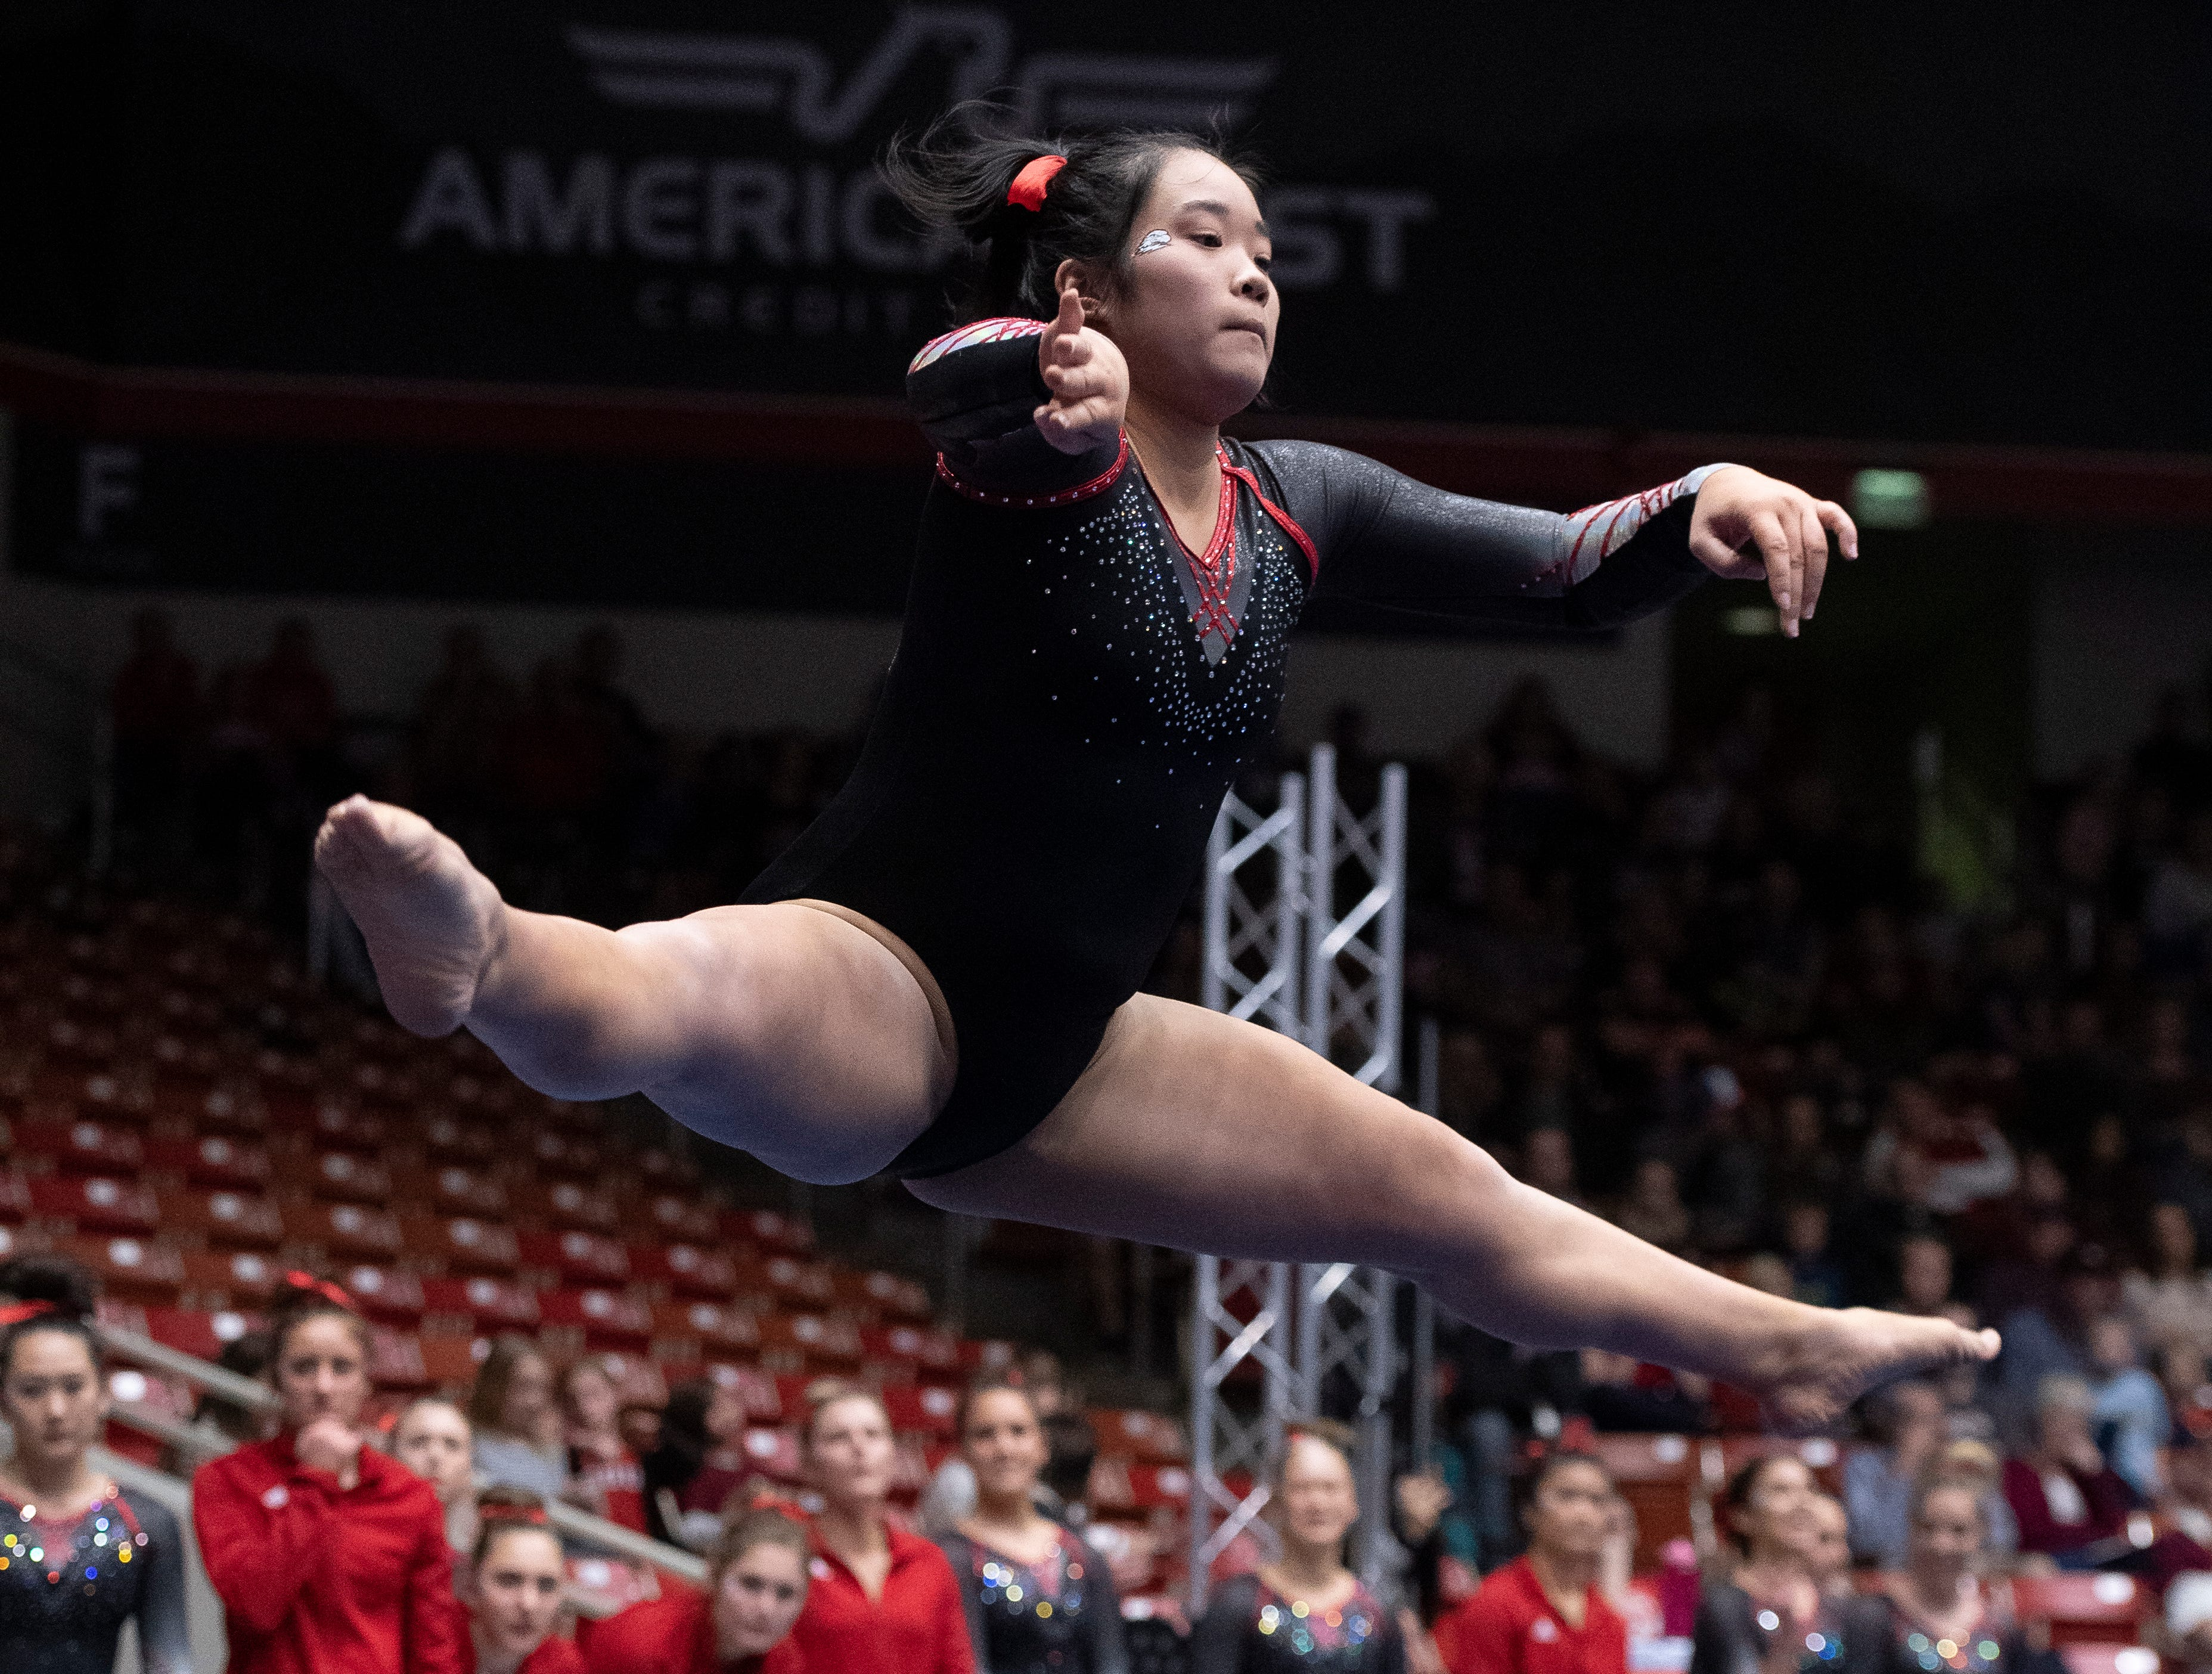 Southern Utah University freshman Caitlin Kho competes against Boise State at the America First Event Center Friday, January 18, 2019.